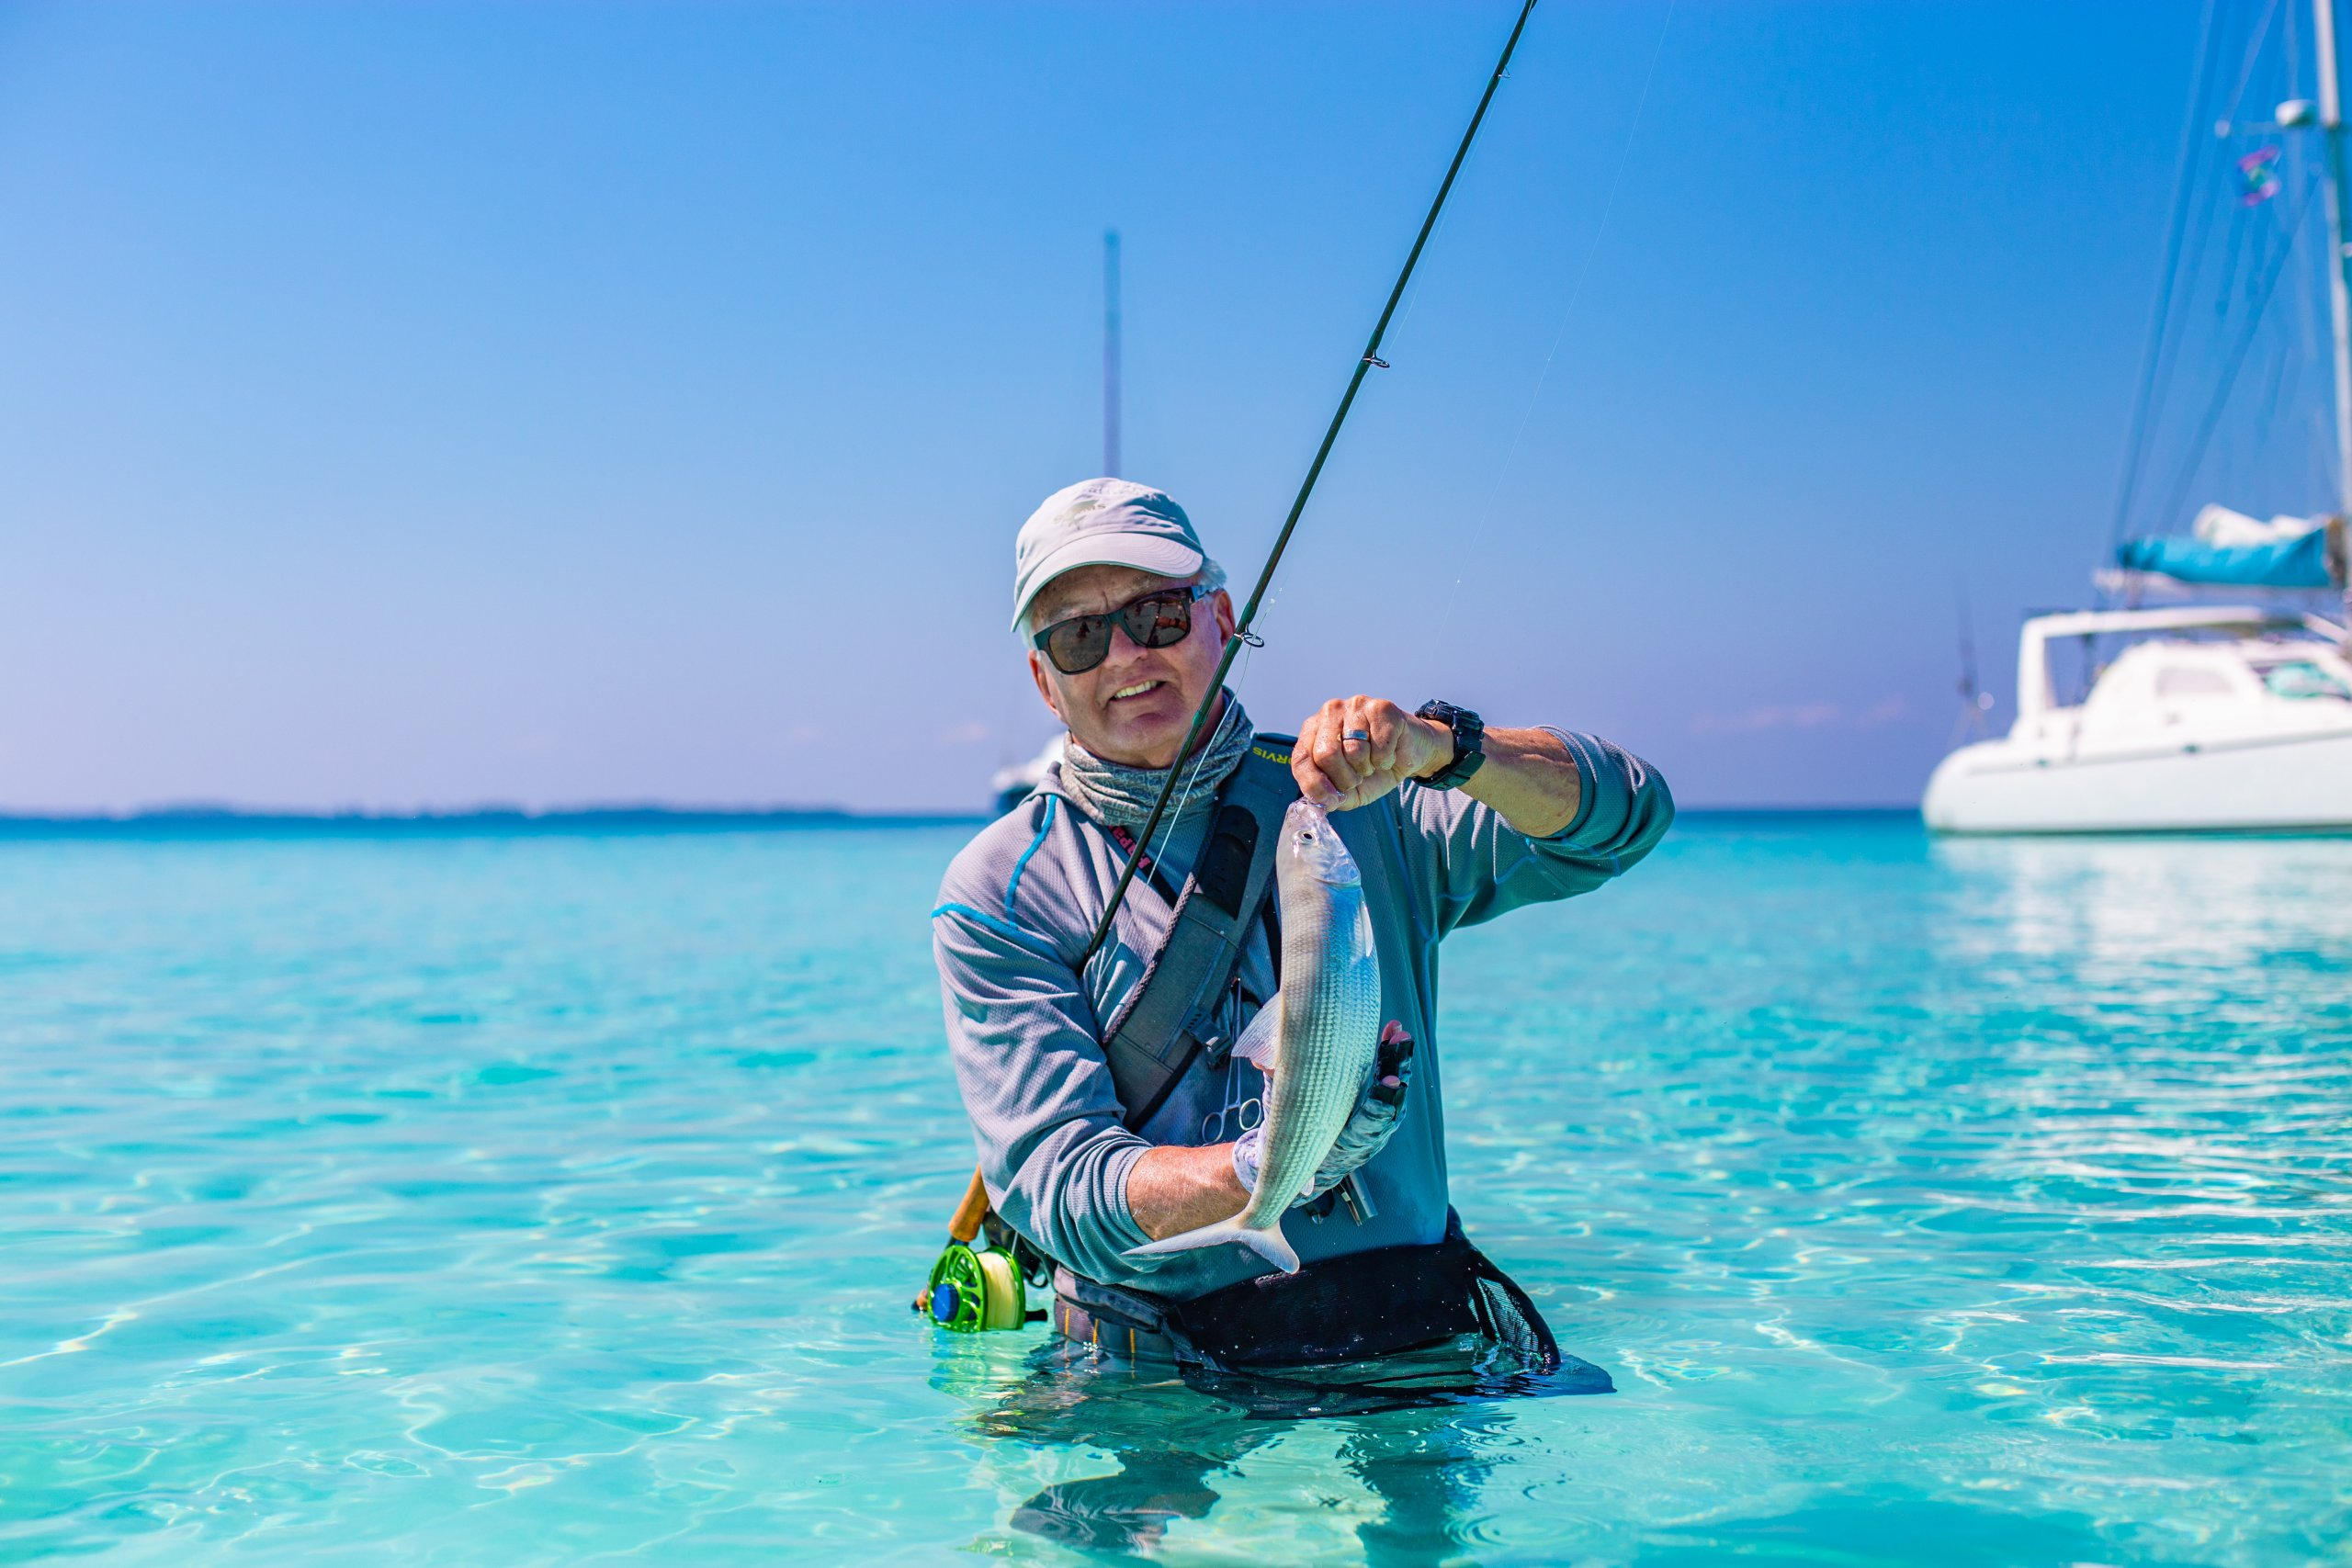 Amazing score for fly fishing enthusiast at Ray Caye, Belize!